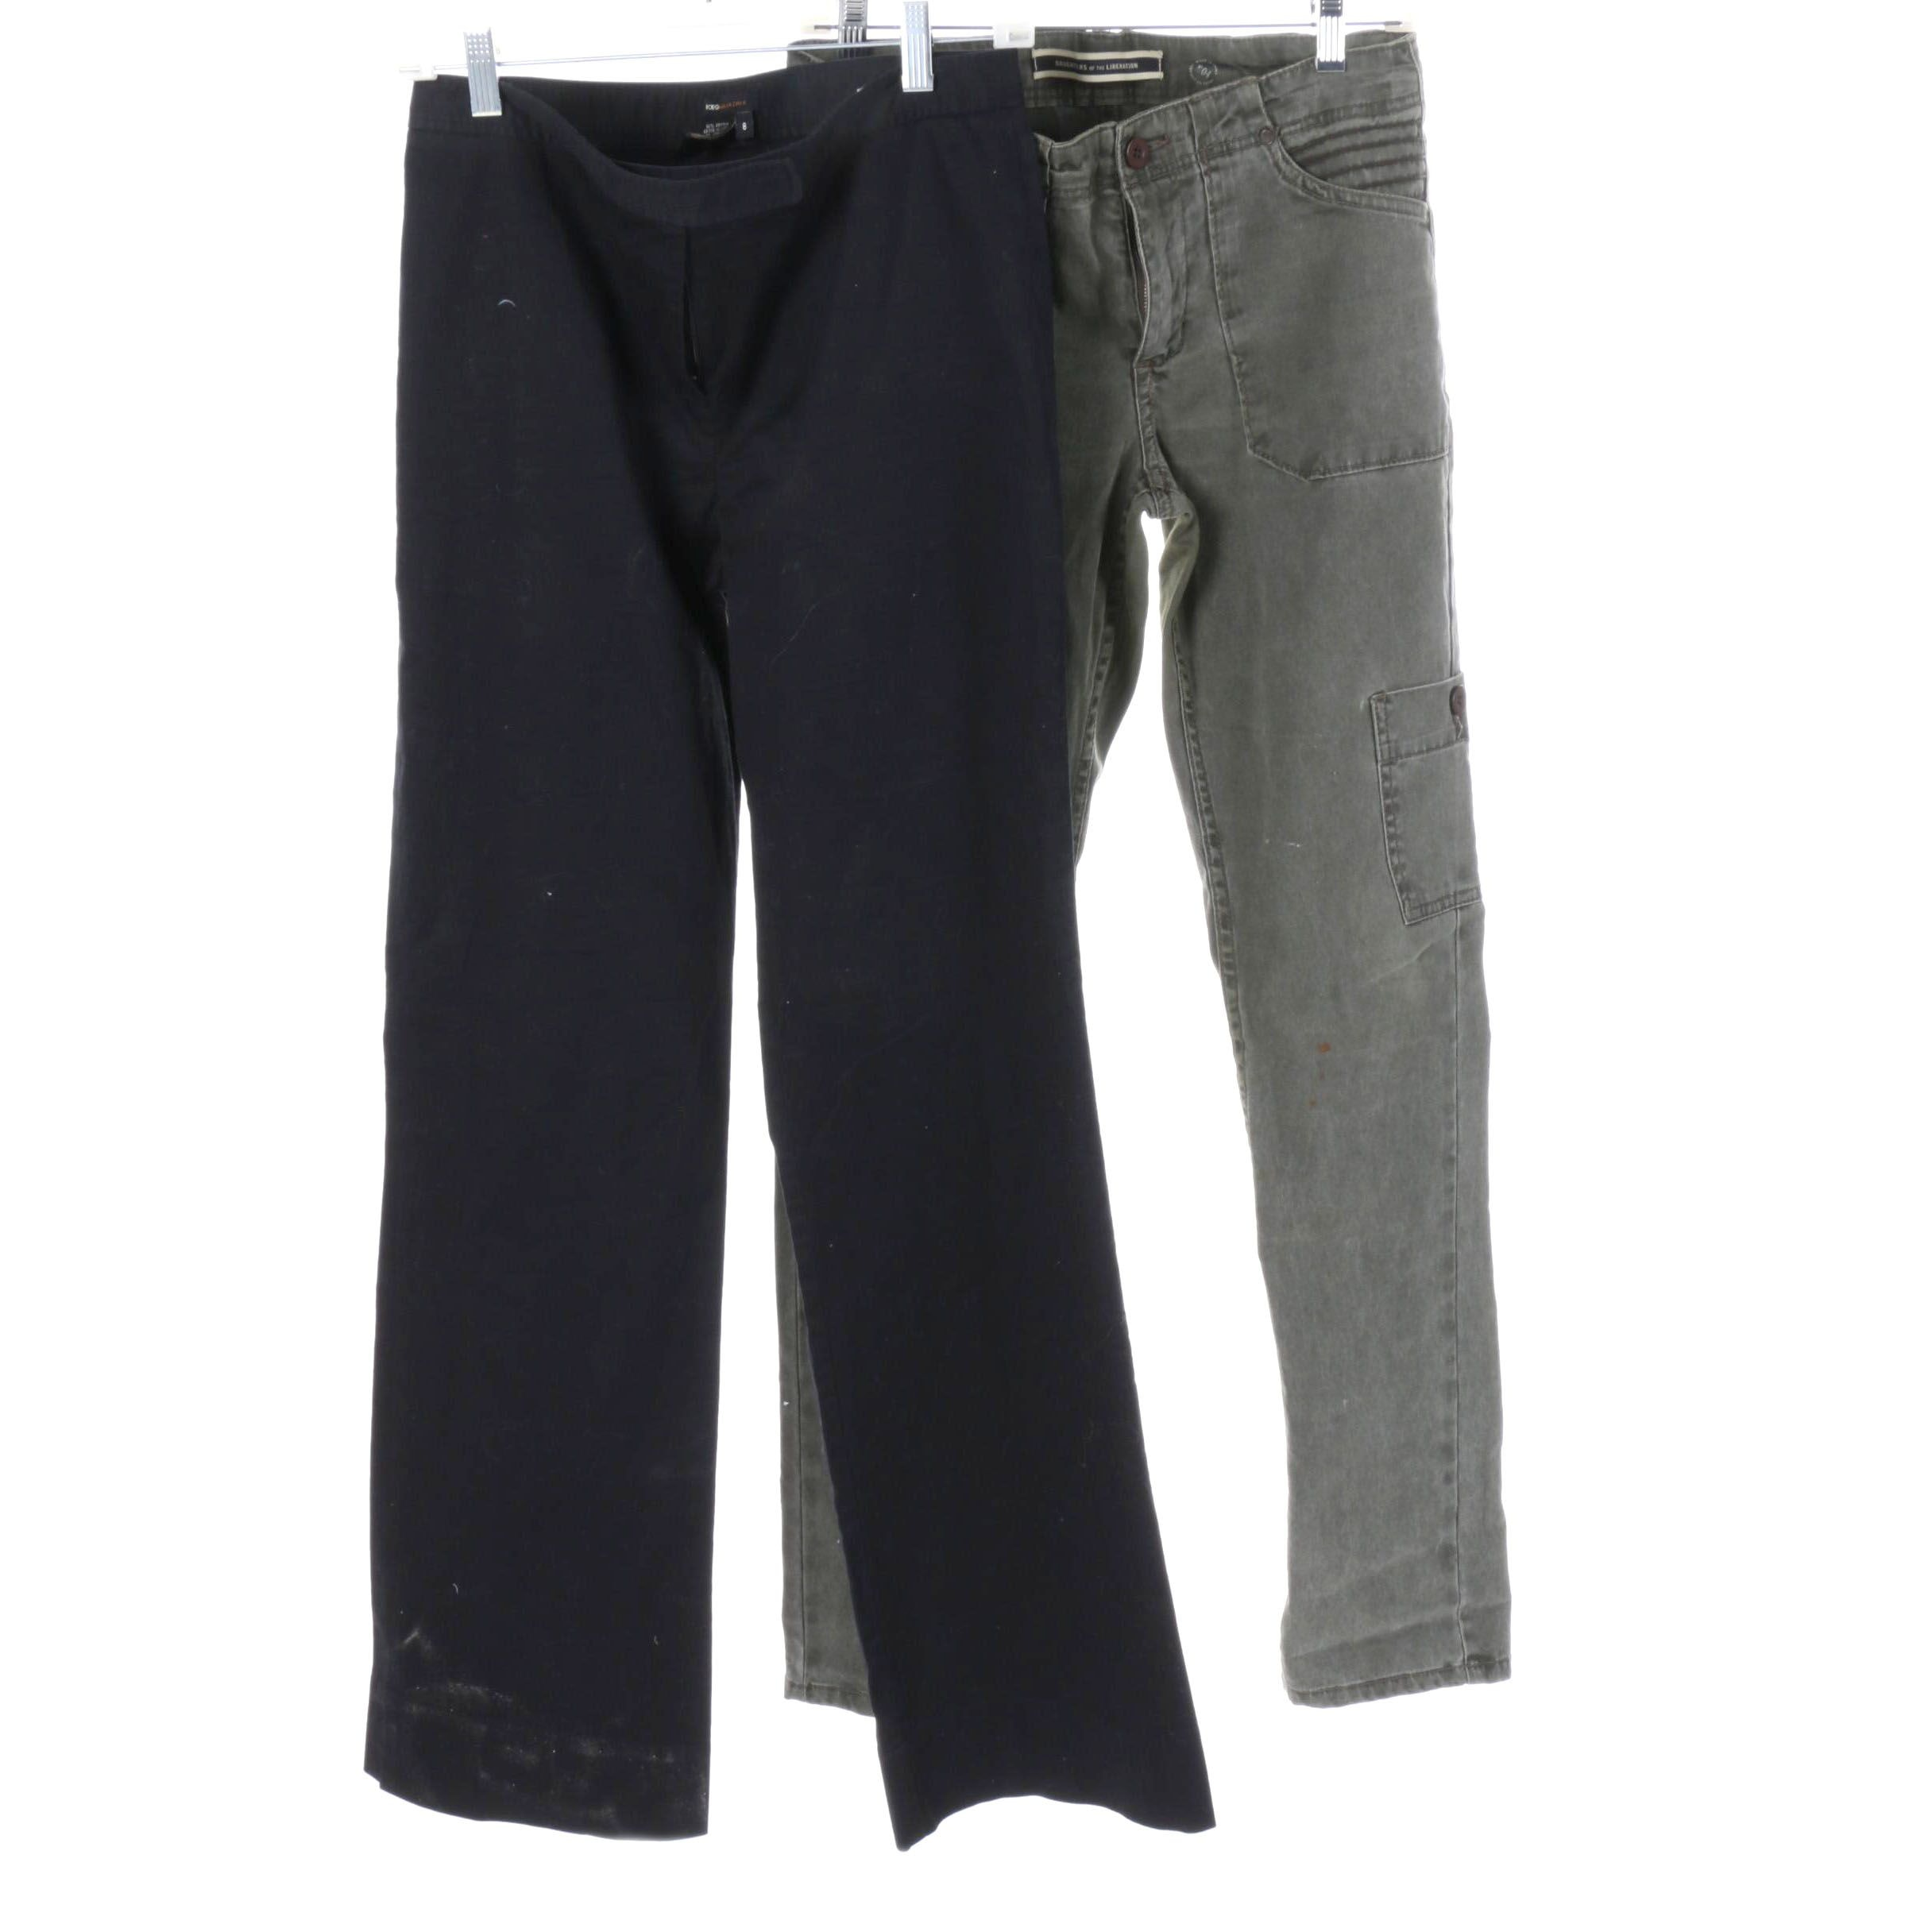 BCBG Max Azria and Daughters of the Liberation Pants